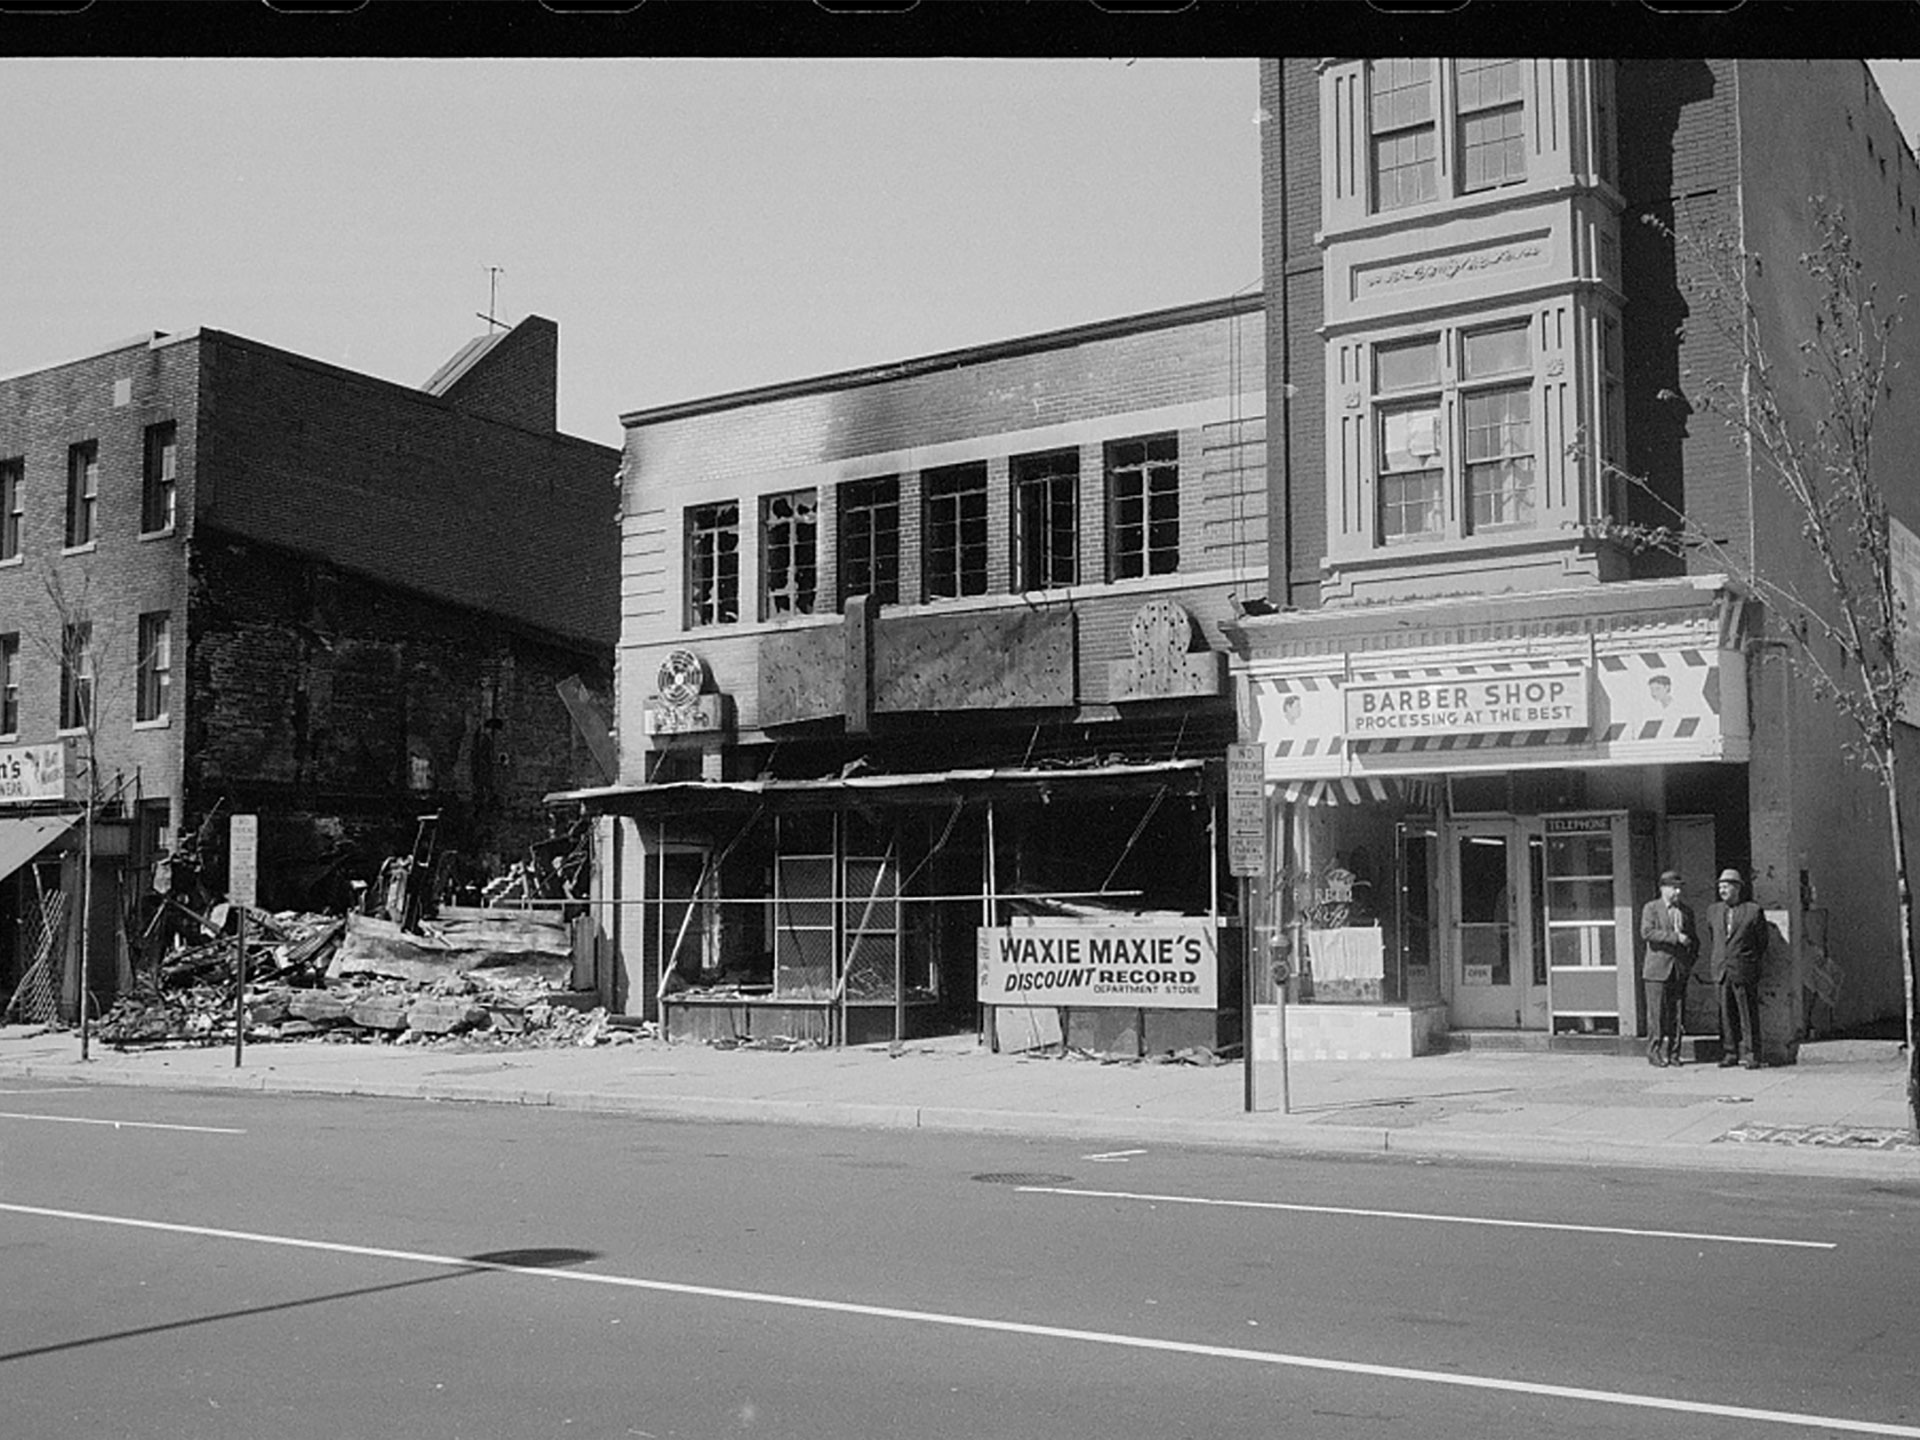 Section of Fourteenth Street NW where rioting broke out following Martin Luther King, Jr.'s assassination in 1968. Black and white photograph from the Library of Congress